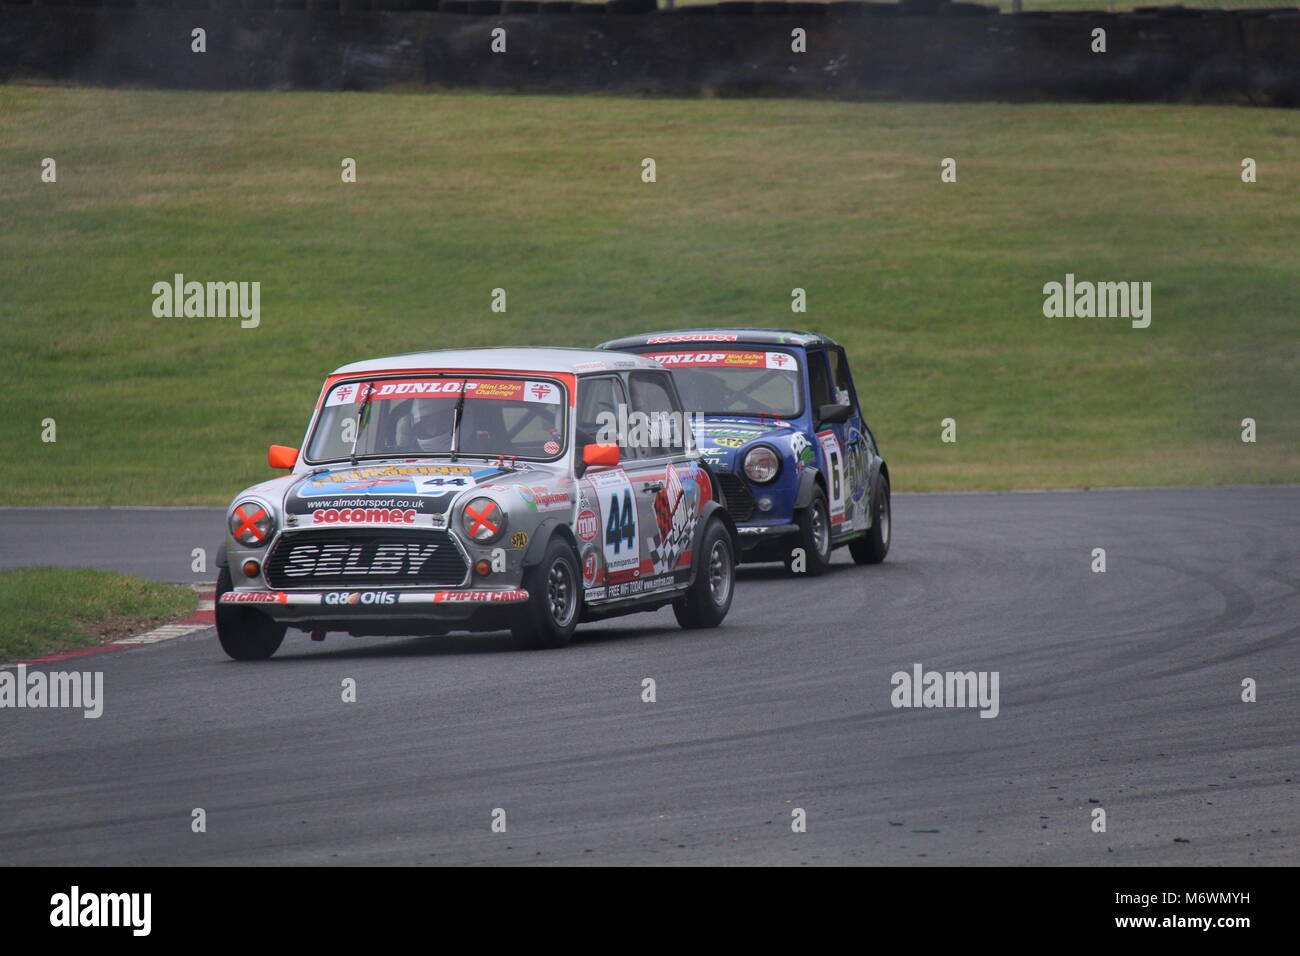 Mini Festival At Brands Hatch June 2015 - Stock Image